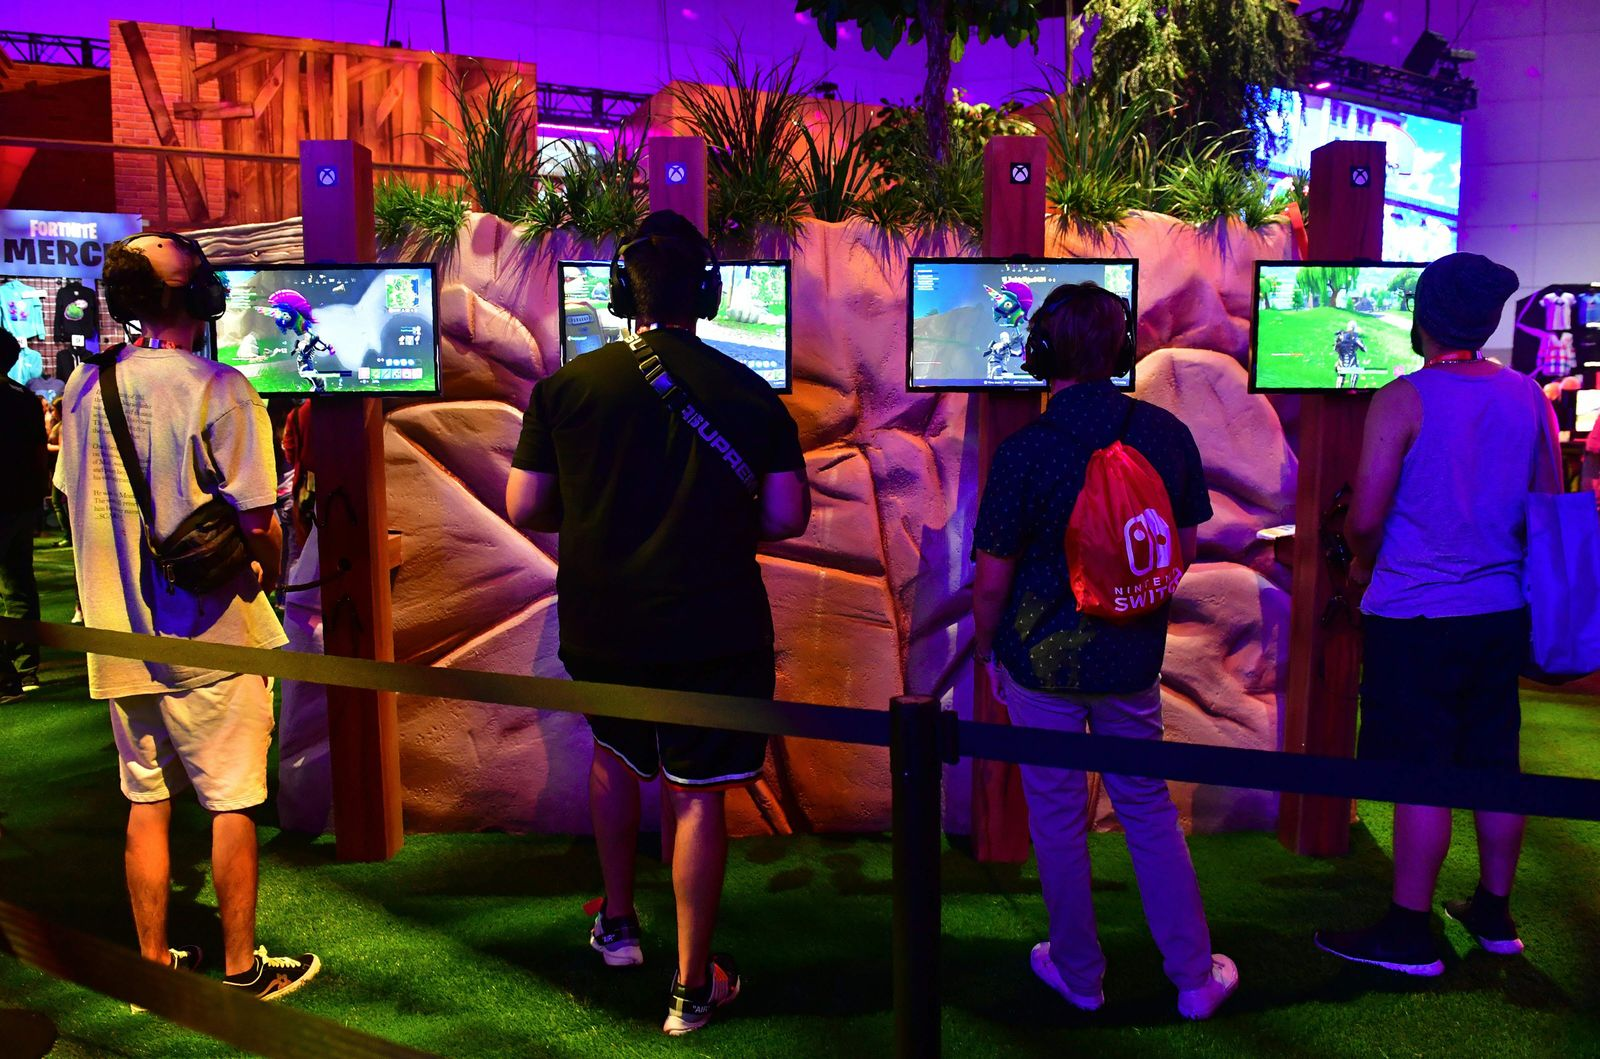 E3 2018, the three day Electronic Entertainment Expo, one of the biggest events in the gaming industry calendar